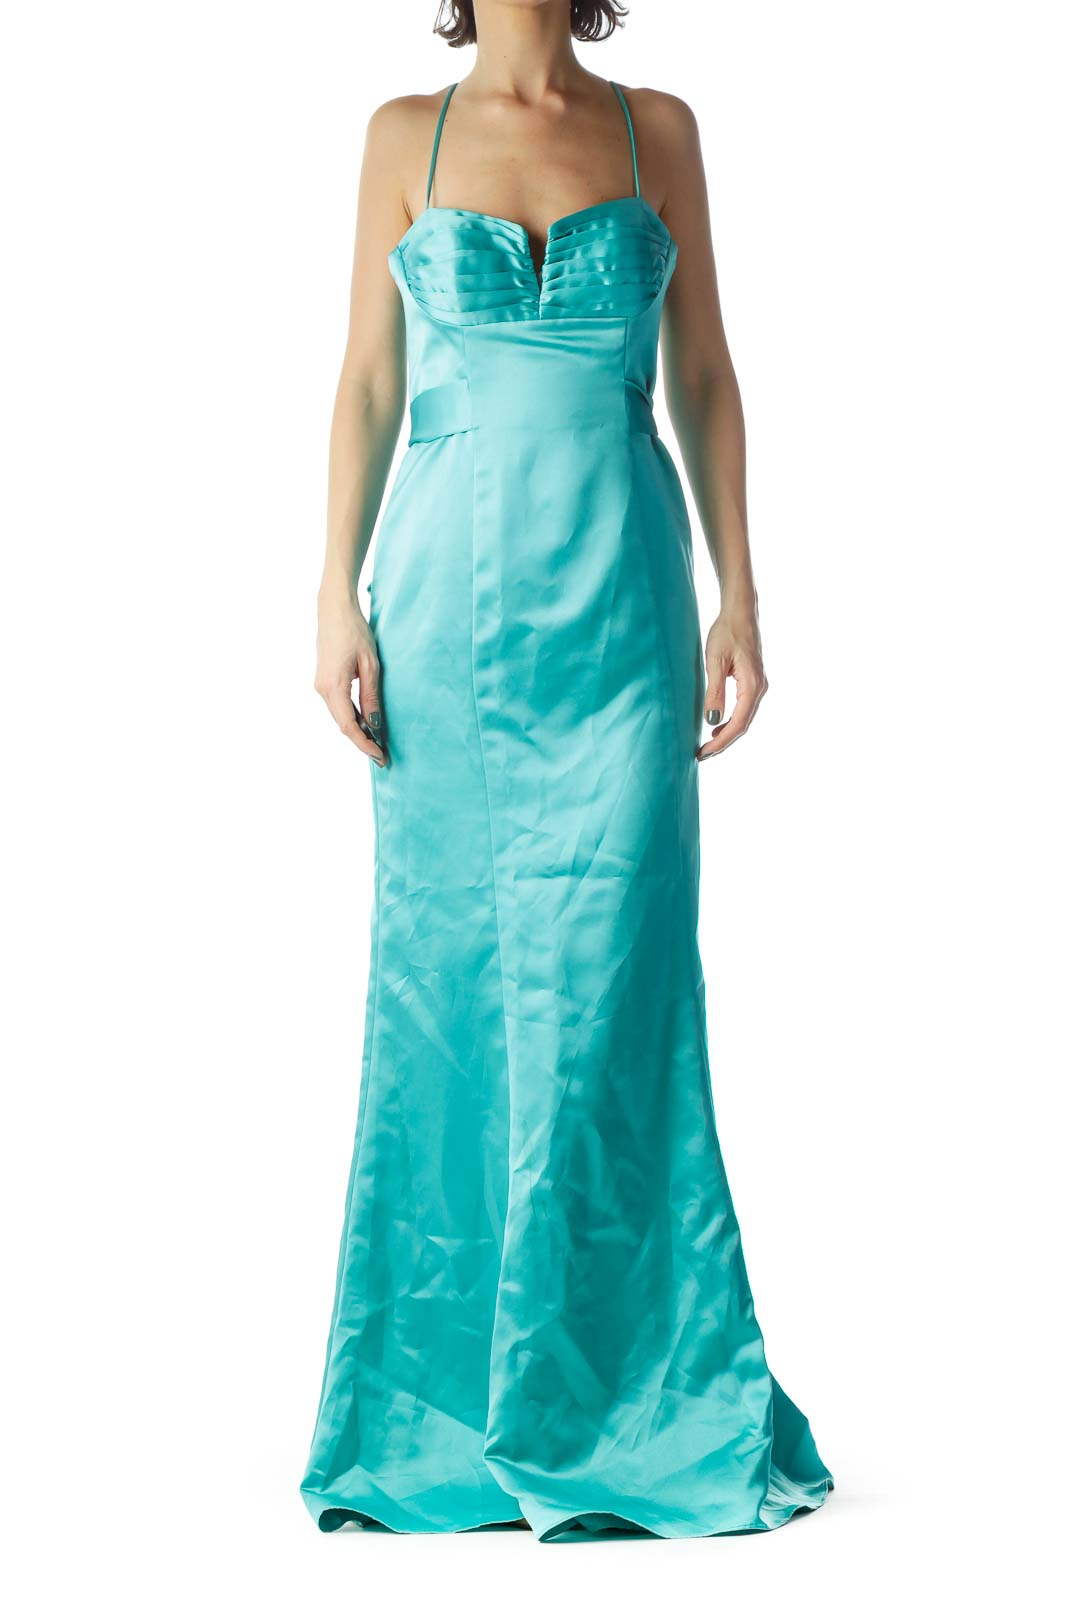 Teal Blue Sweetheart Neck Spaghetti Strap Dress